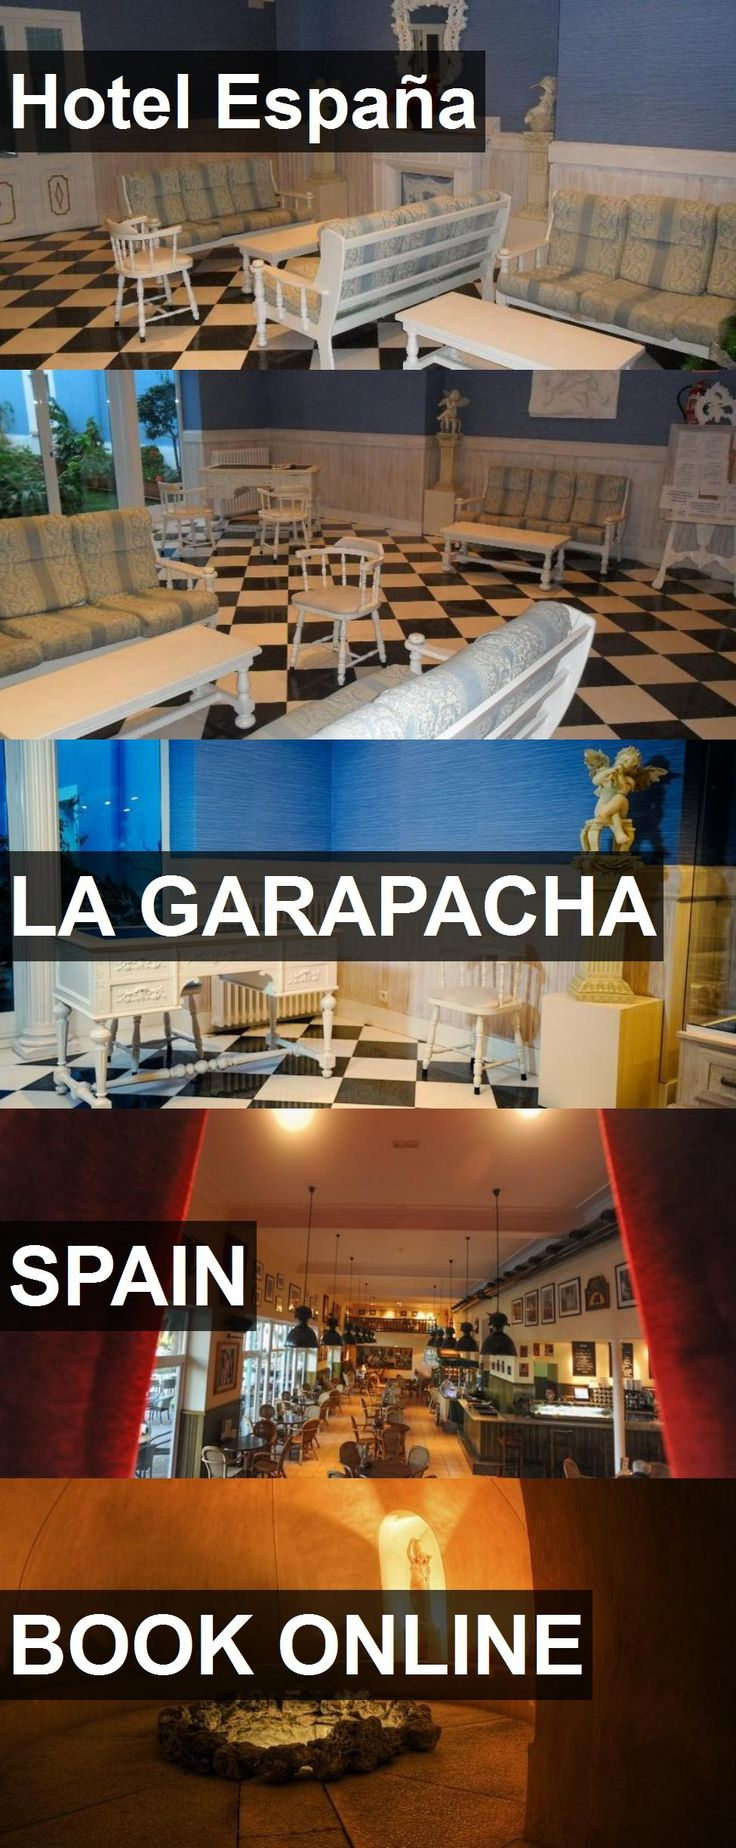 Hotel España in La Garapacha, Spain. For more information, photos, reviews and best prices please follow the link. #Spain #LaGarapacha #travel #vacation #hotel